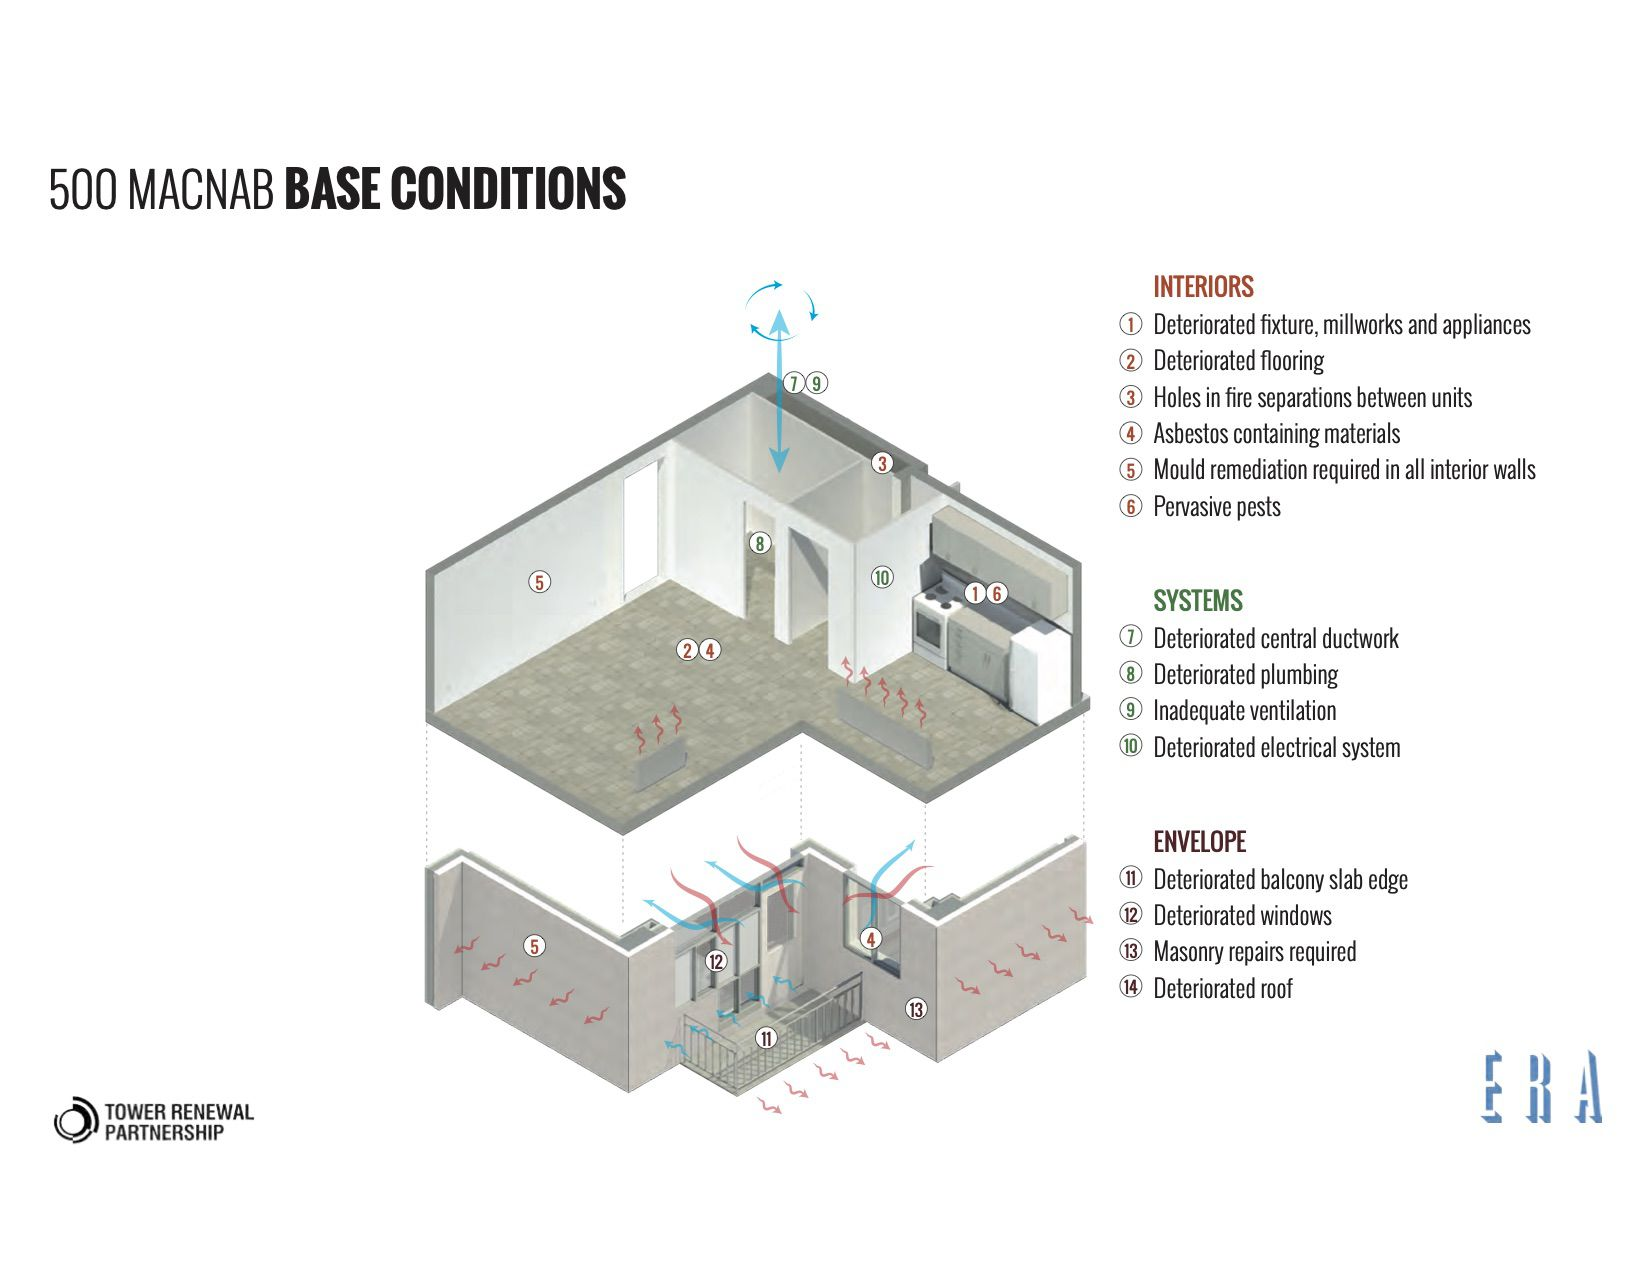 Base conditions